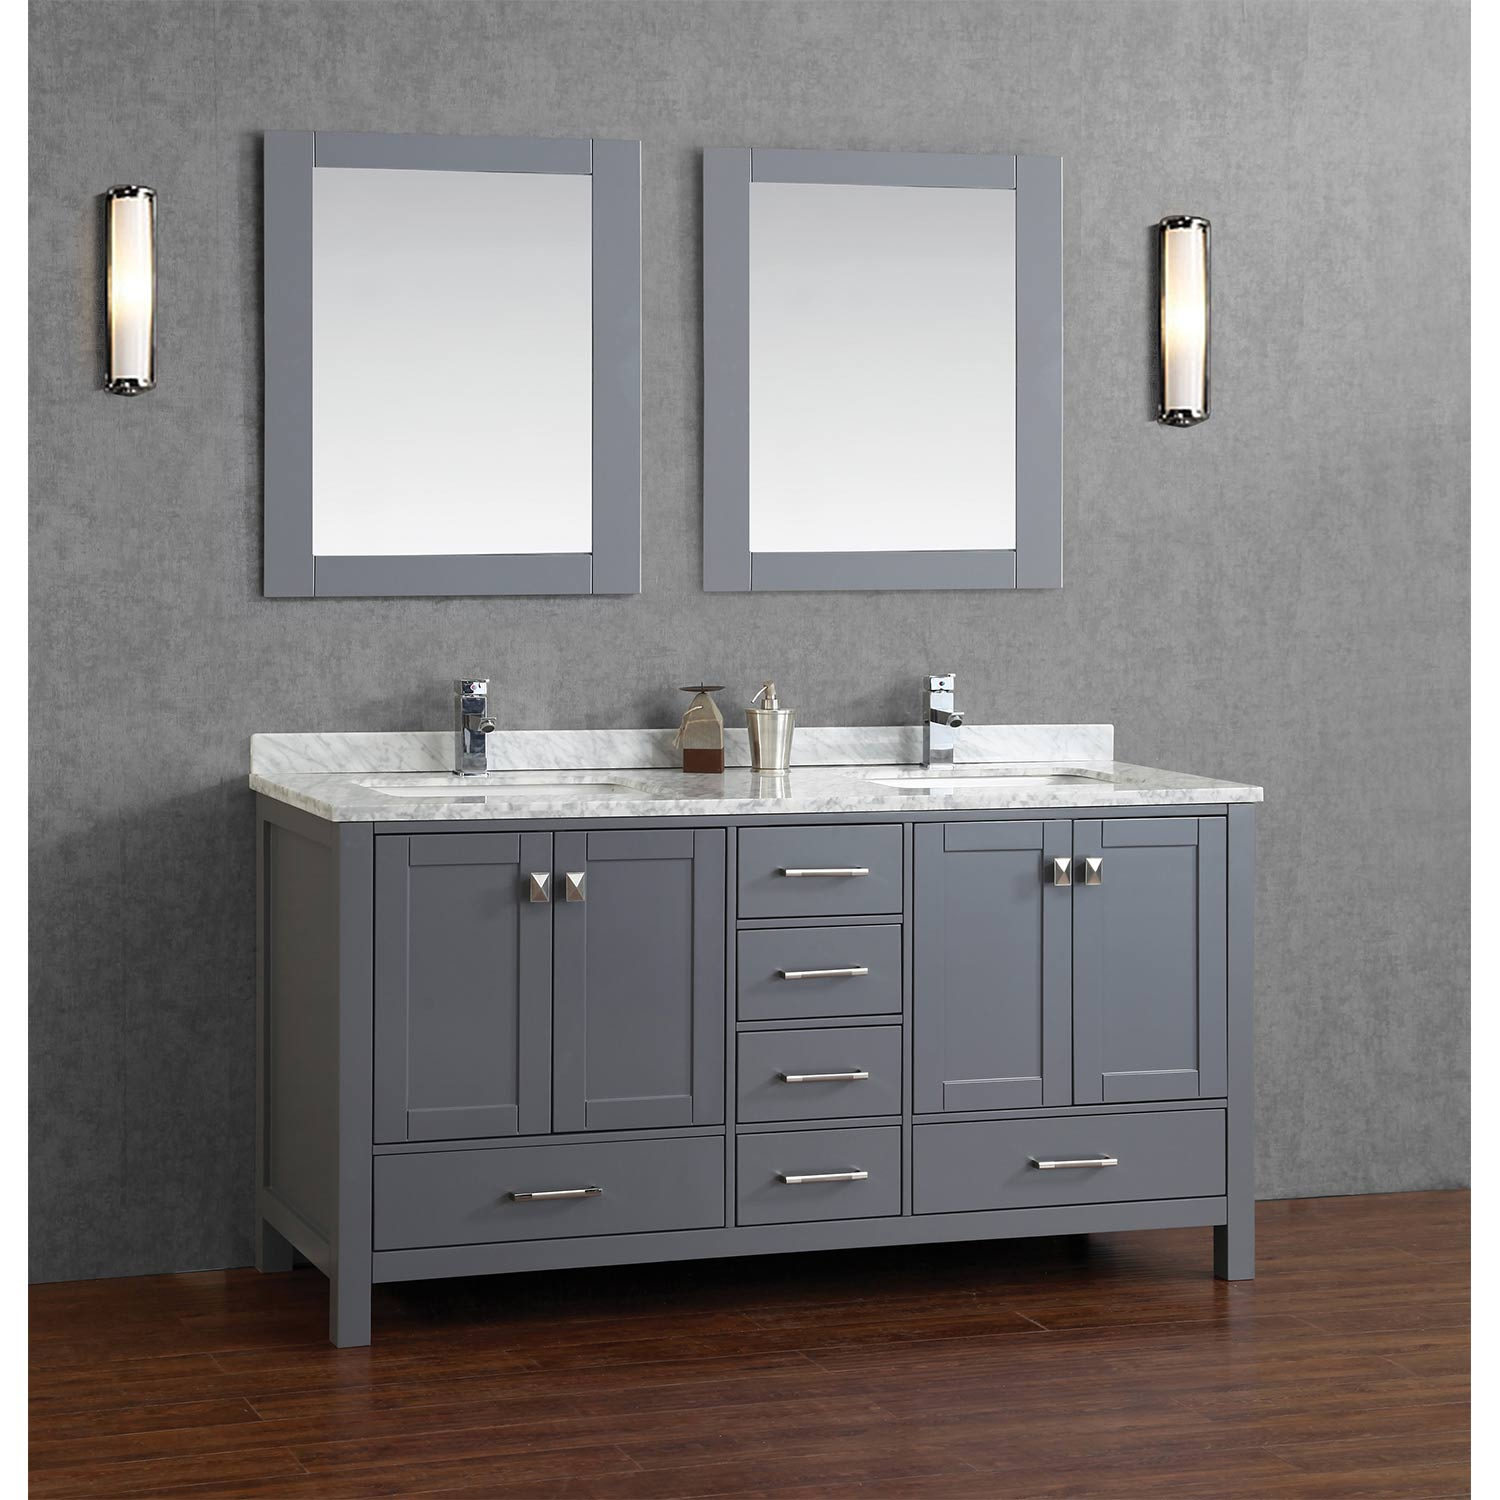 Buy Vincent 72 Inch Solid Wood Double Bathroom Vanity In Charcoal Grey HM 13001 72 WMSQ CG